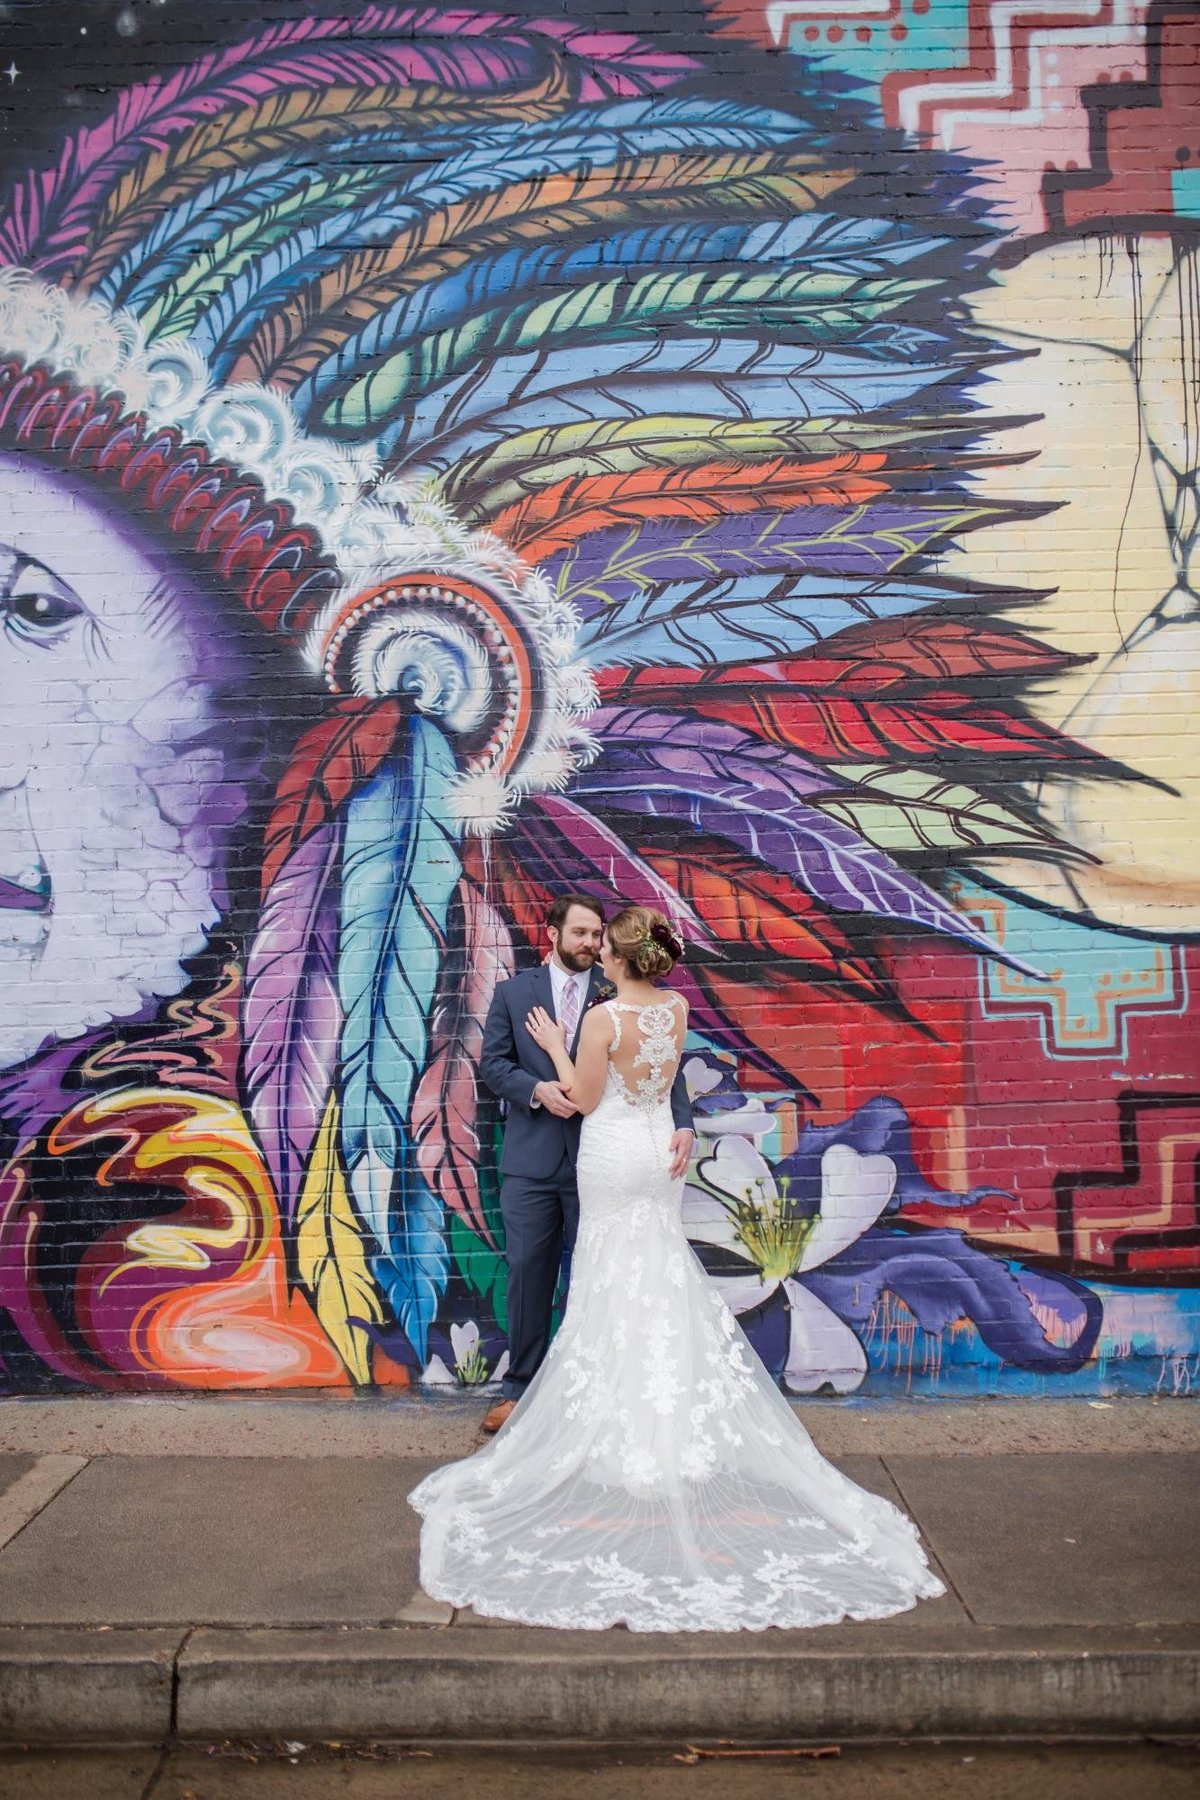 Wedding day with art mural